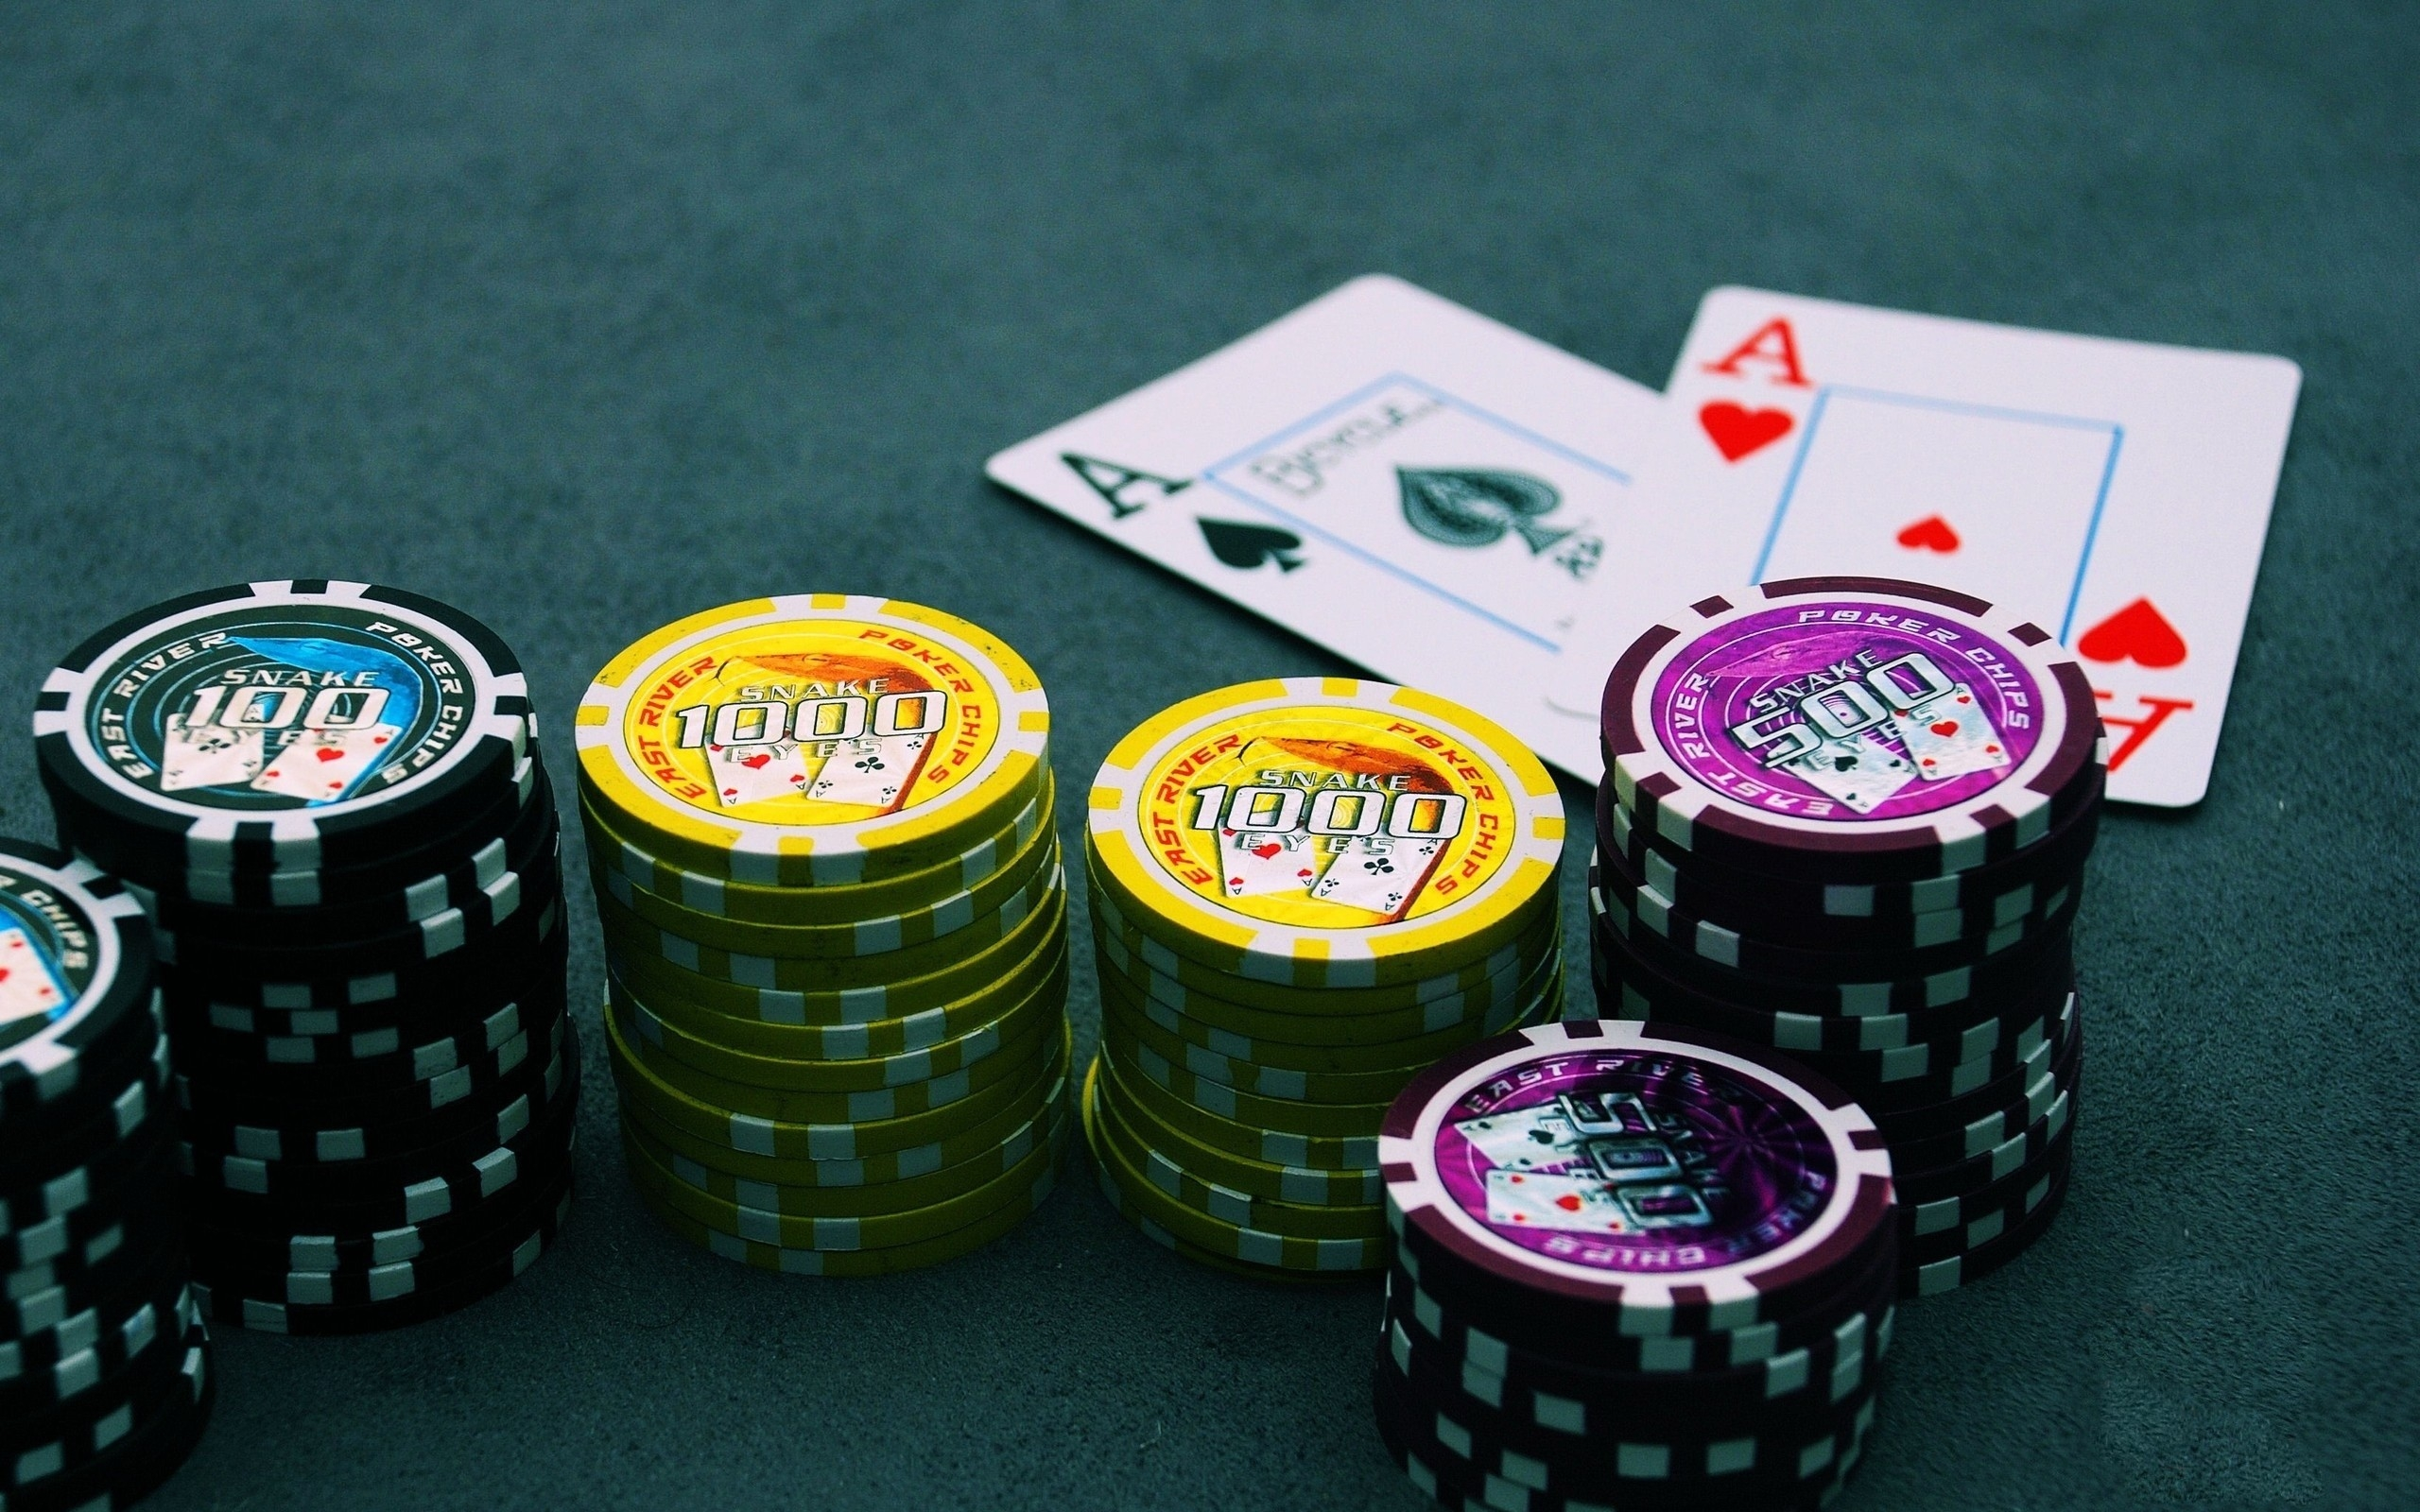 Things to Consider While Choosing a Gambling Site